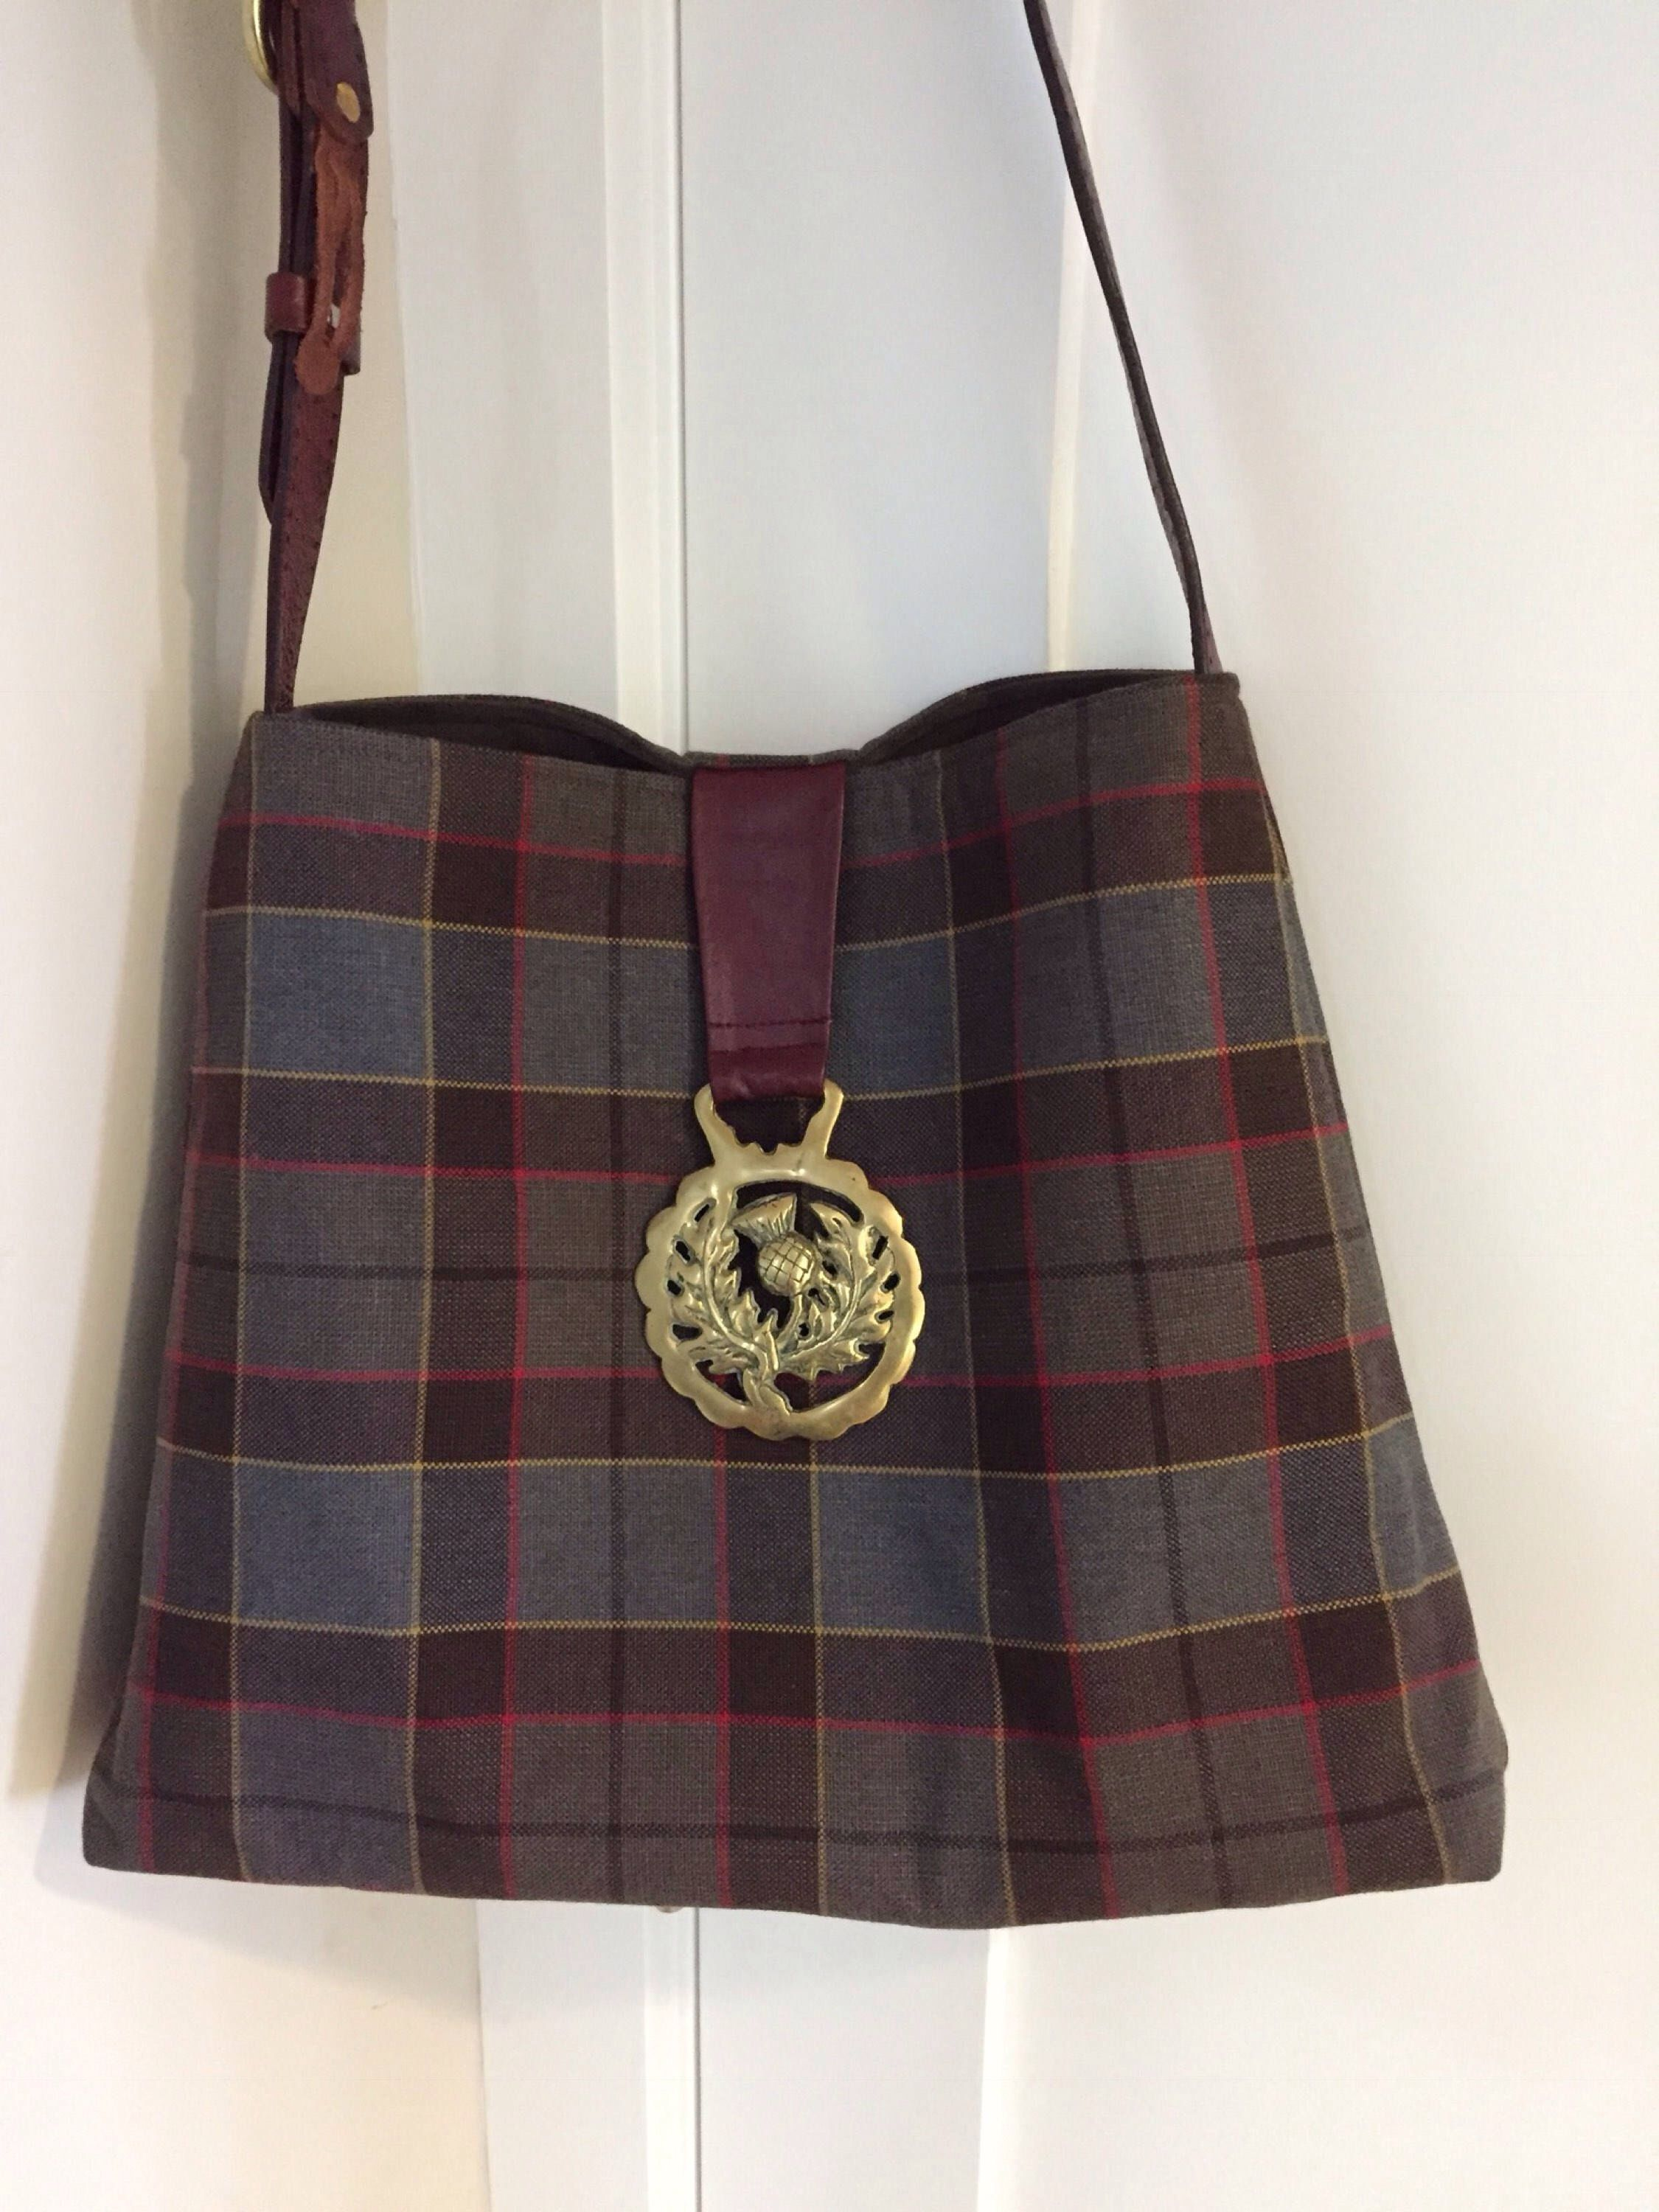 OUTLANDER Jamie Fraser Tartan Plaid Tote Bag Cross Body Shoulder Bag